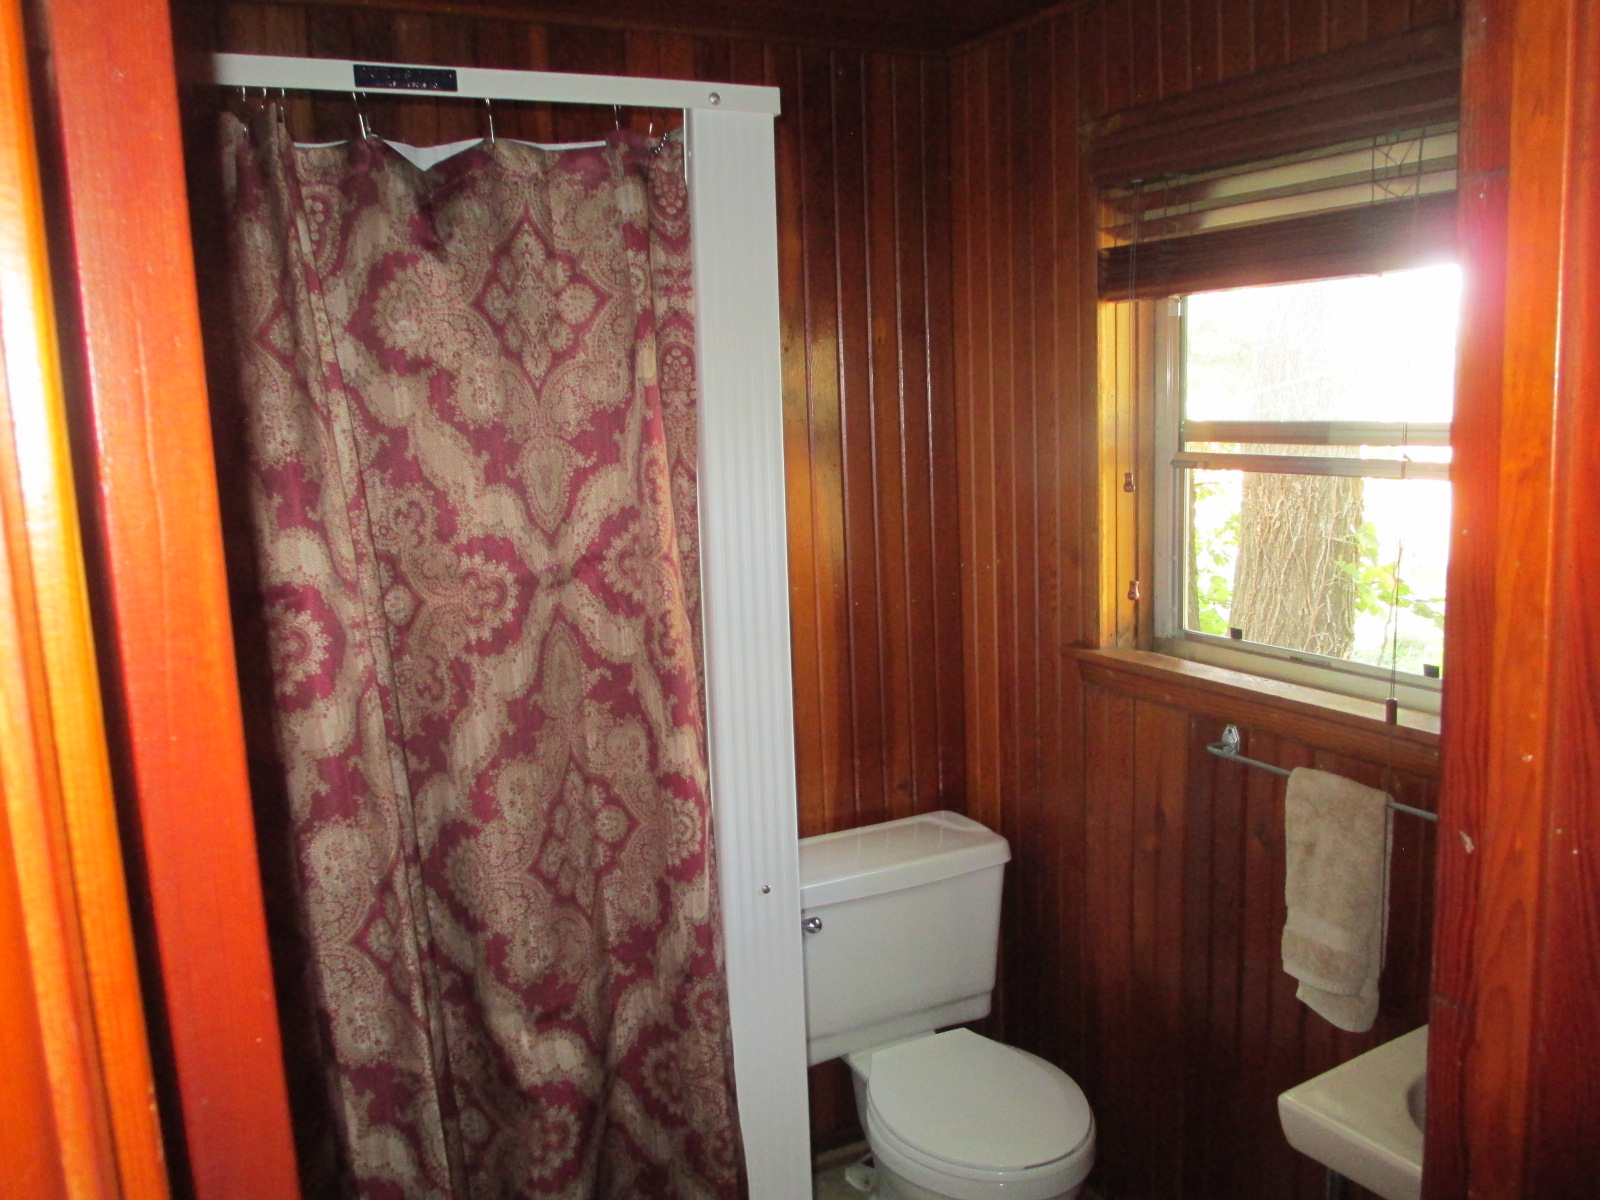 The Fire House bathroom and shower